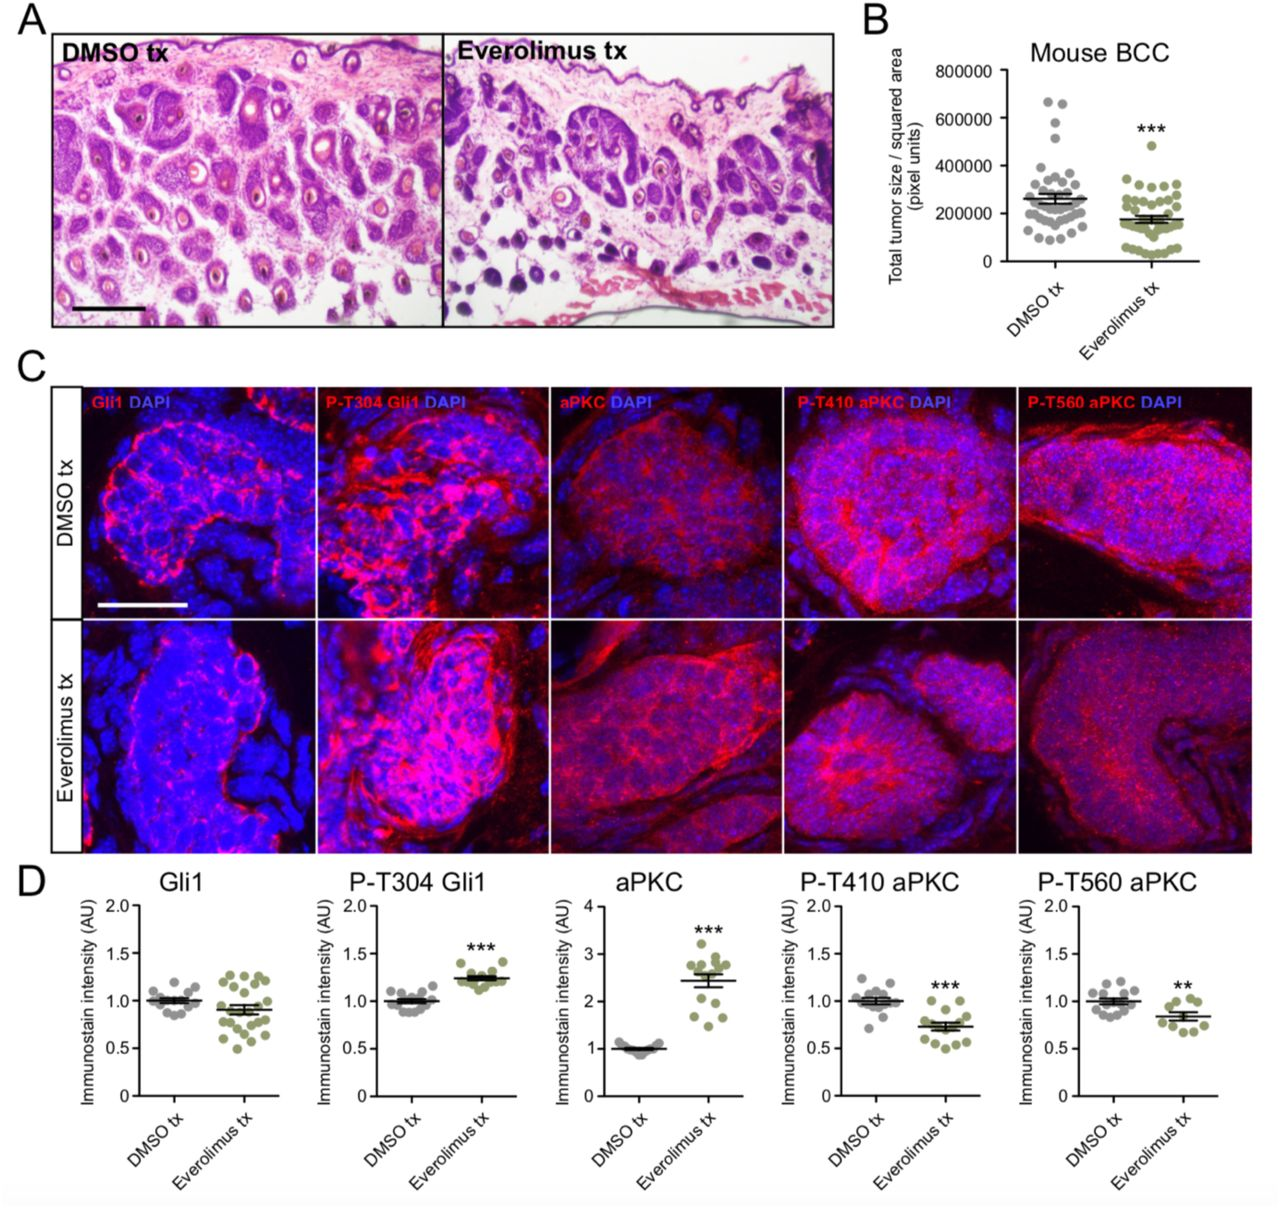 mTor inhibition suppresses murine BCC growth and aPKC activity. A) Hematoxylin and eosin staining of dorsal back skin collected from DMSO- or Everolimus-treated Ptch1 fl/fl ; Gli1 - Cre ERT2 mice. Scale bar, 50 μm. B) Quantification of total tumor size per square area (n > 250 tumors from 5 mice). tx, treatment. C) Immunofluorescent staining of DMSO- or Everolimus-treated Ptch1 fl/fl ; Gli1 - Cre ERT2 mice for the indicated markers. Scale bar, 25 μm. D) Quantification of immunostains (n = 5 tumors from 3 mice). AU, arbitrary units. Error bars represent SEM. Significance was determined by unpaired two-tailed t test. *, p